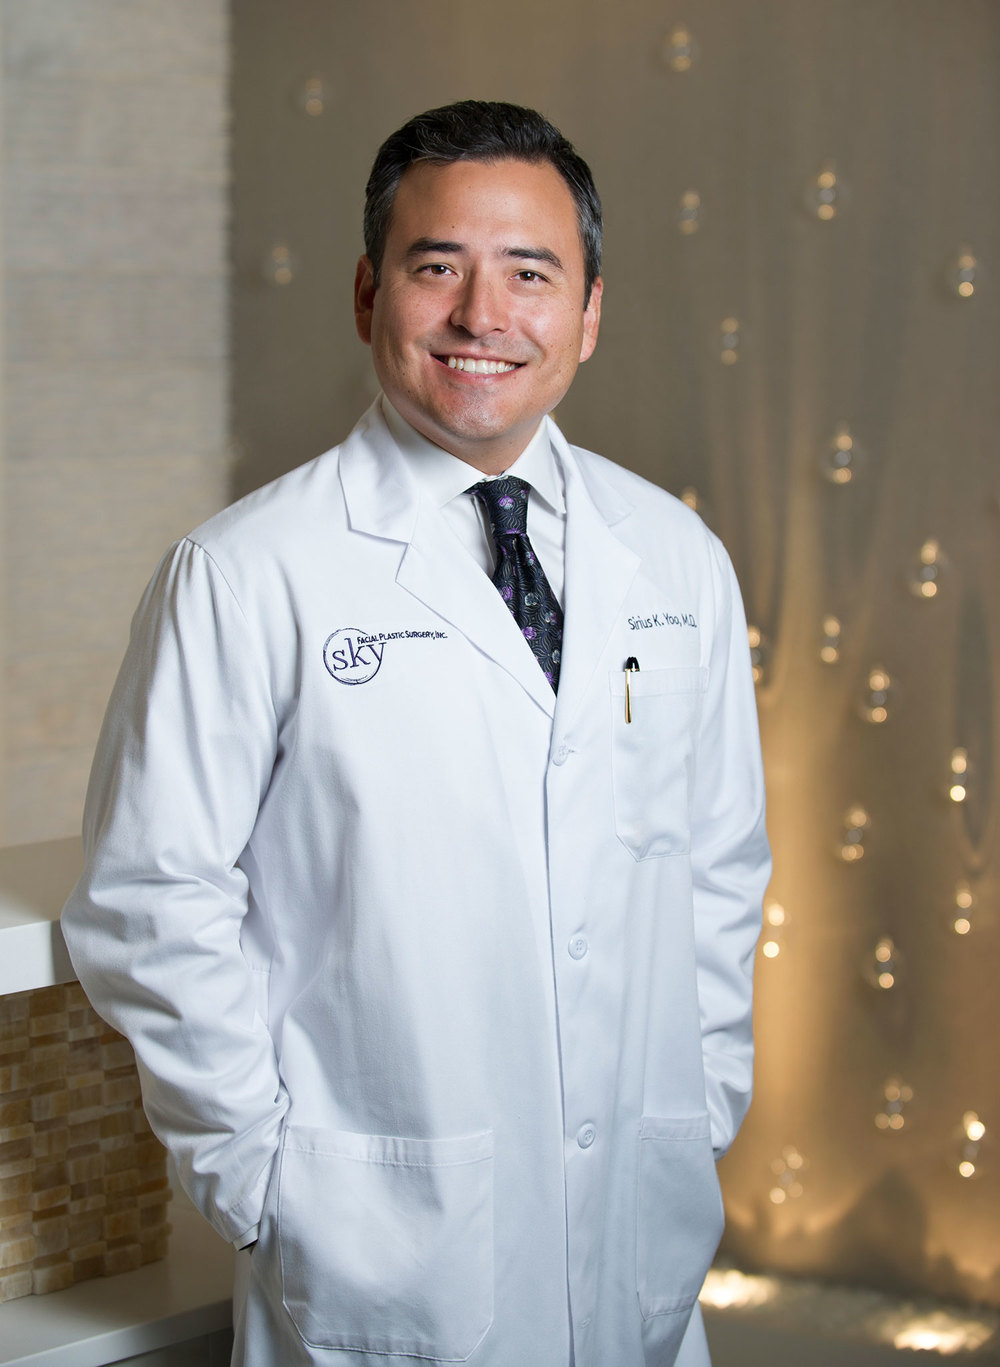 PHOTO: Sirius K. Yoo, M.D. is a double board-certified facial plastic surgeon who specializes in natural-looking results for the face and neck.